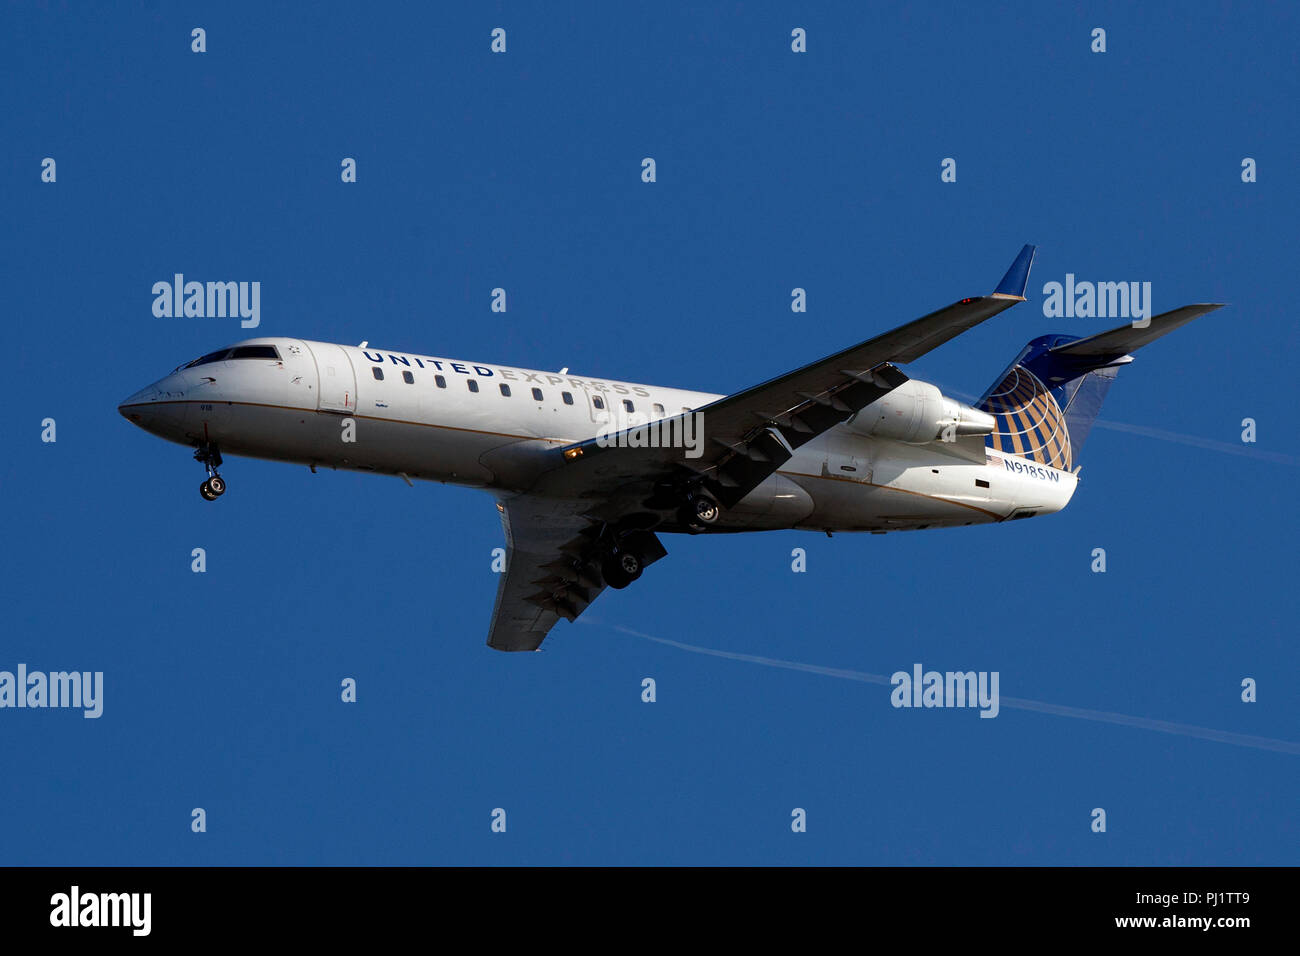 Bombardier CL-600-2B19 (N918SW) operated by Skywest Airlines on approach to San Francisco International Airport (SFO), San Francisco, California, United States of America - Stock Image